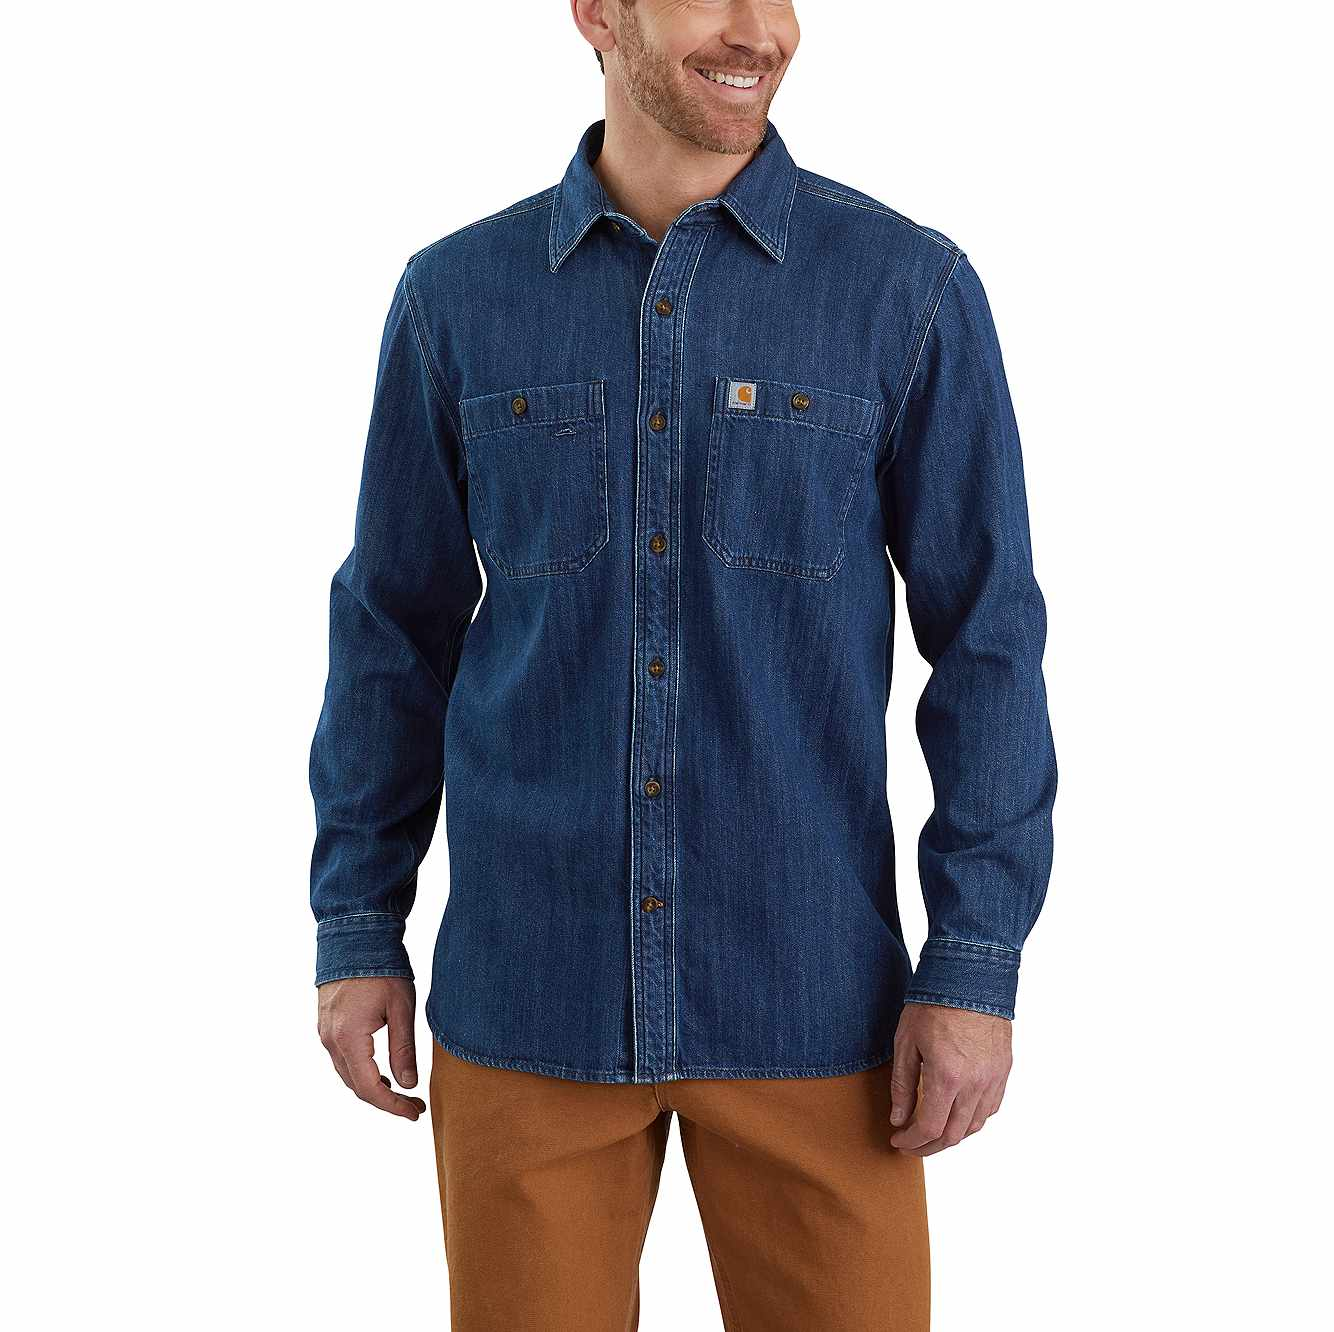 Picture of Denim Long-Sleeve Shirt in Levee